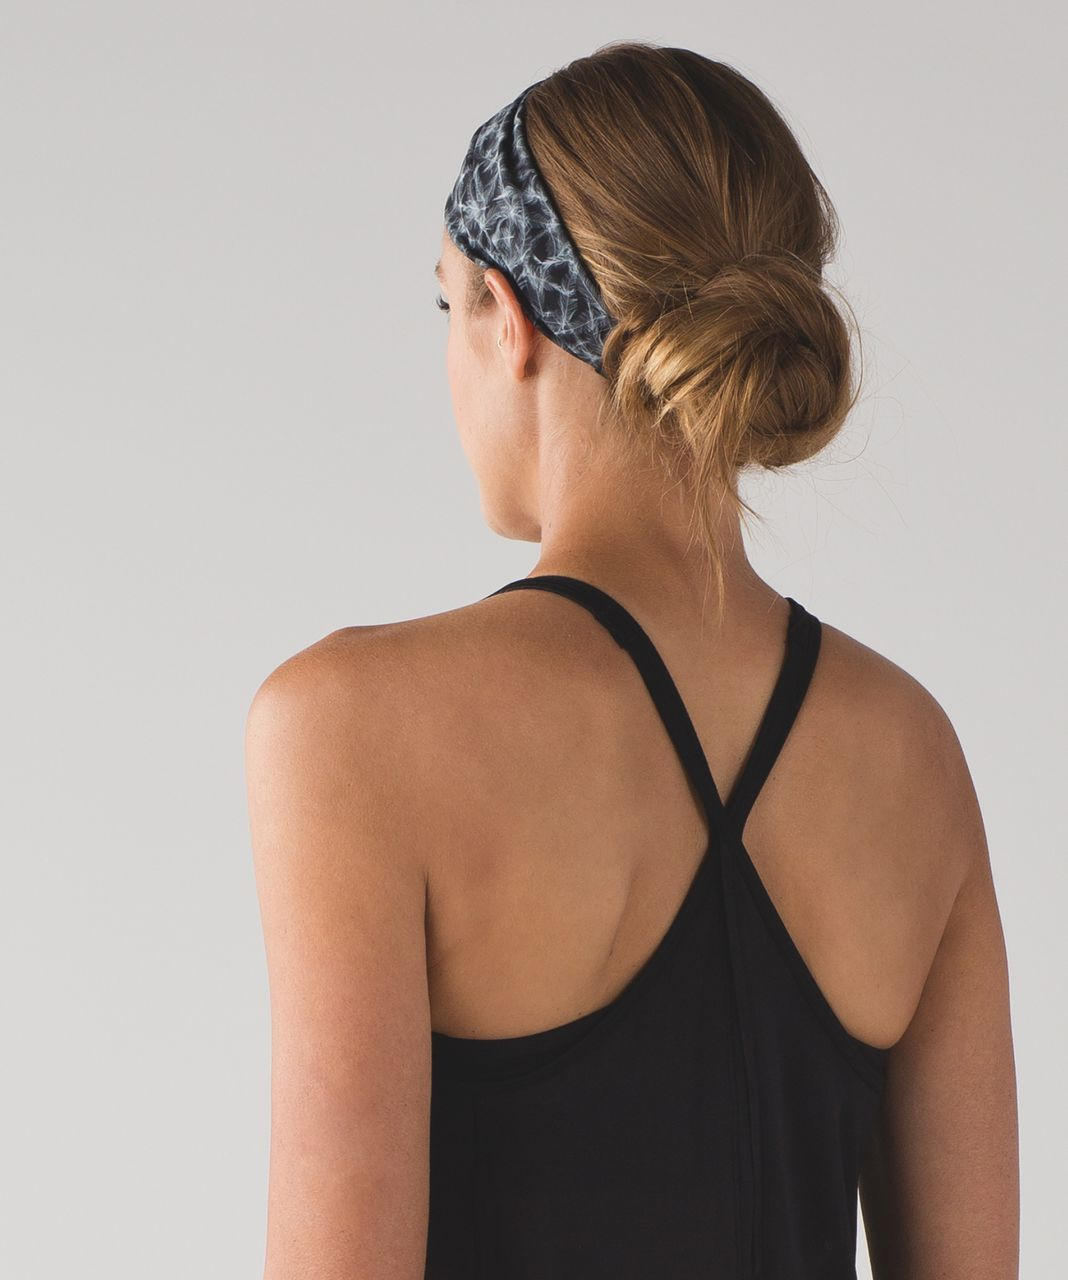 Lululemon Fringe Fighter Headband (Nulux) - Plume White Black